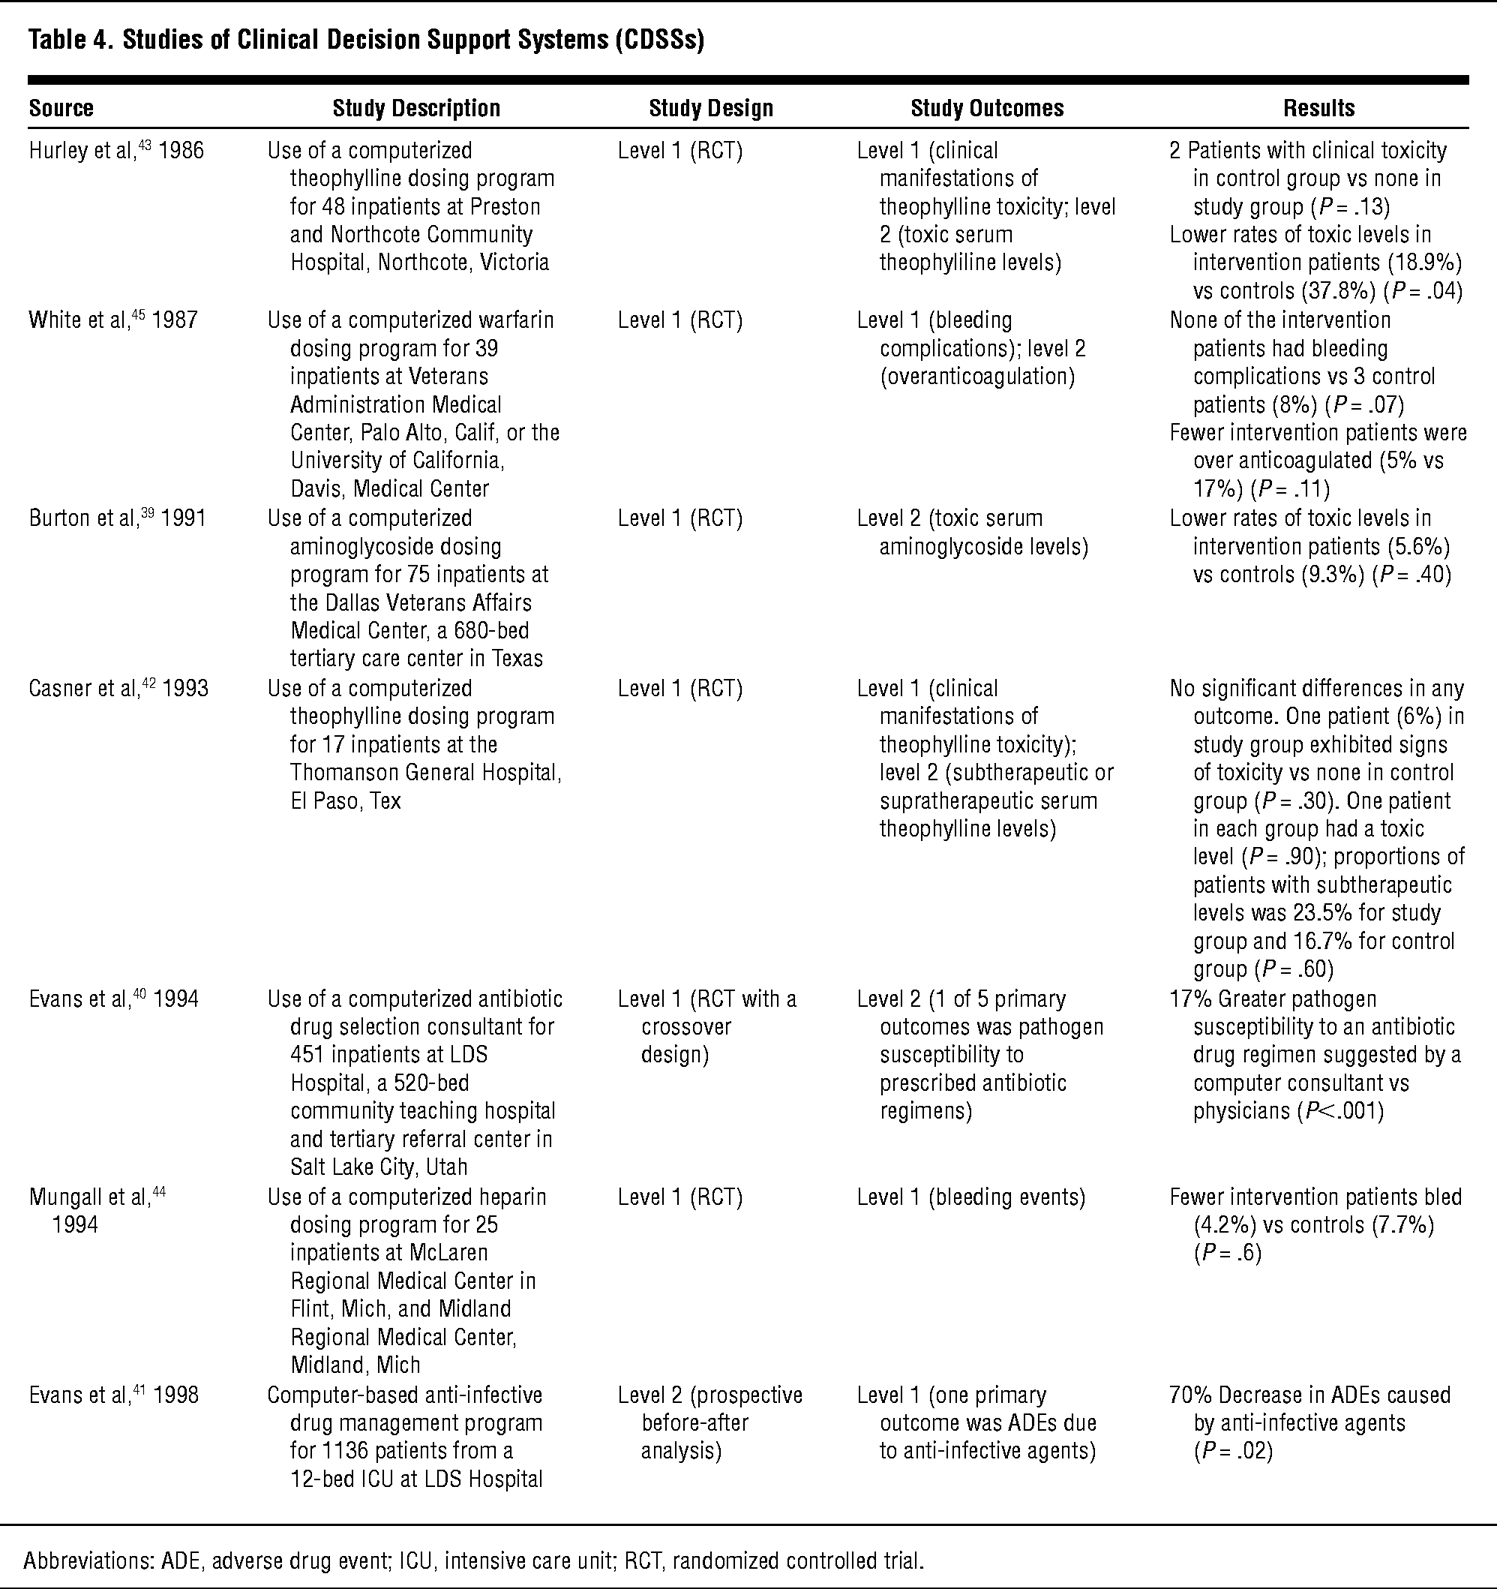 Effects Of Computerized Physician Order Entry And Clinical